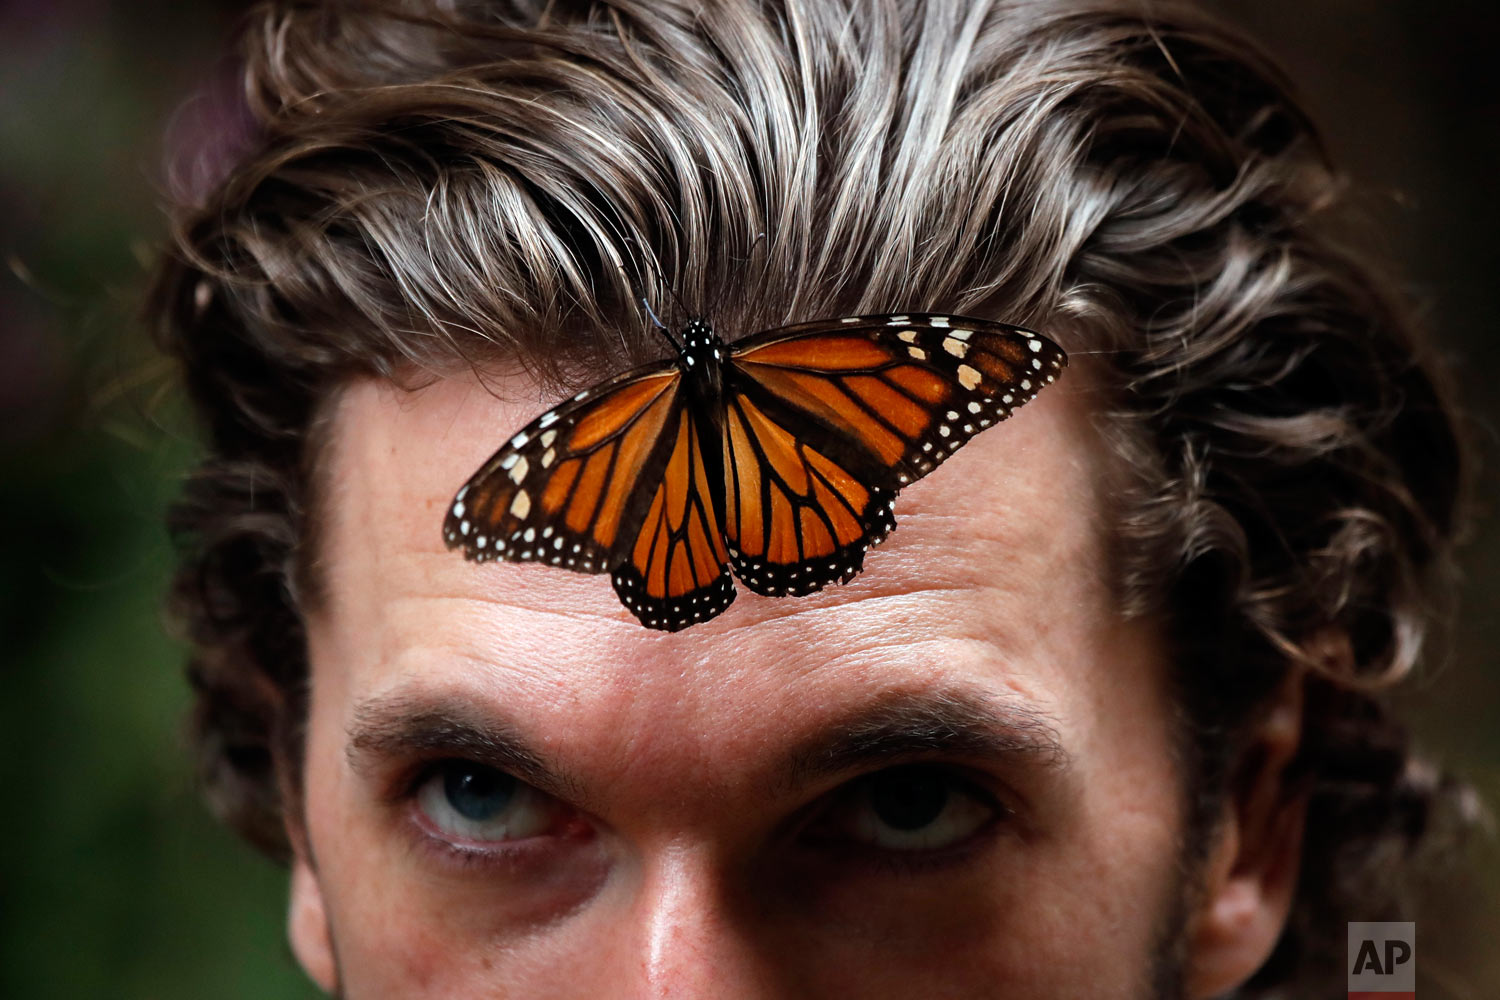 A Monarch butterfly rests on the forehead of a visitor at the Amanalco de Becerra sanctuary, in the mountains near the extinct Nevado de Toluca volcano, in Mexico, Feb. 14, 2019. (AP Photo /Marco Ugarte)